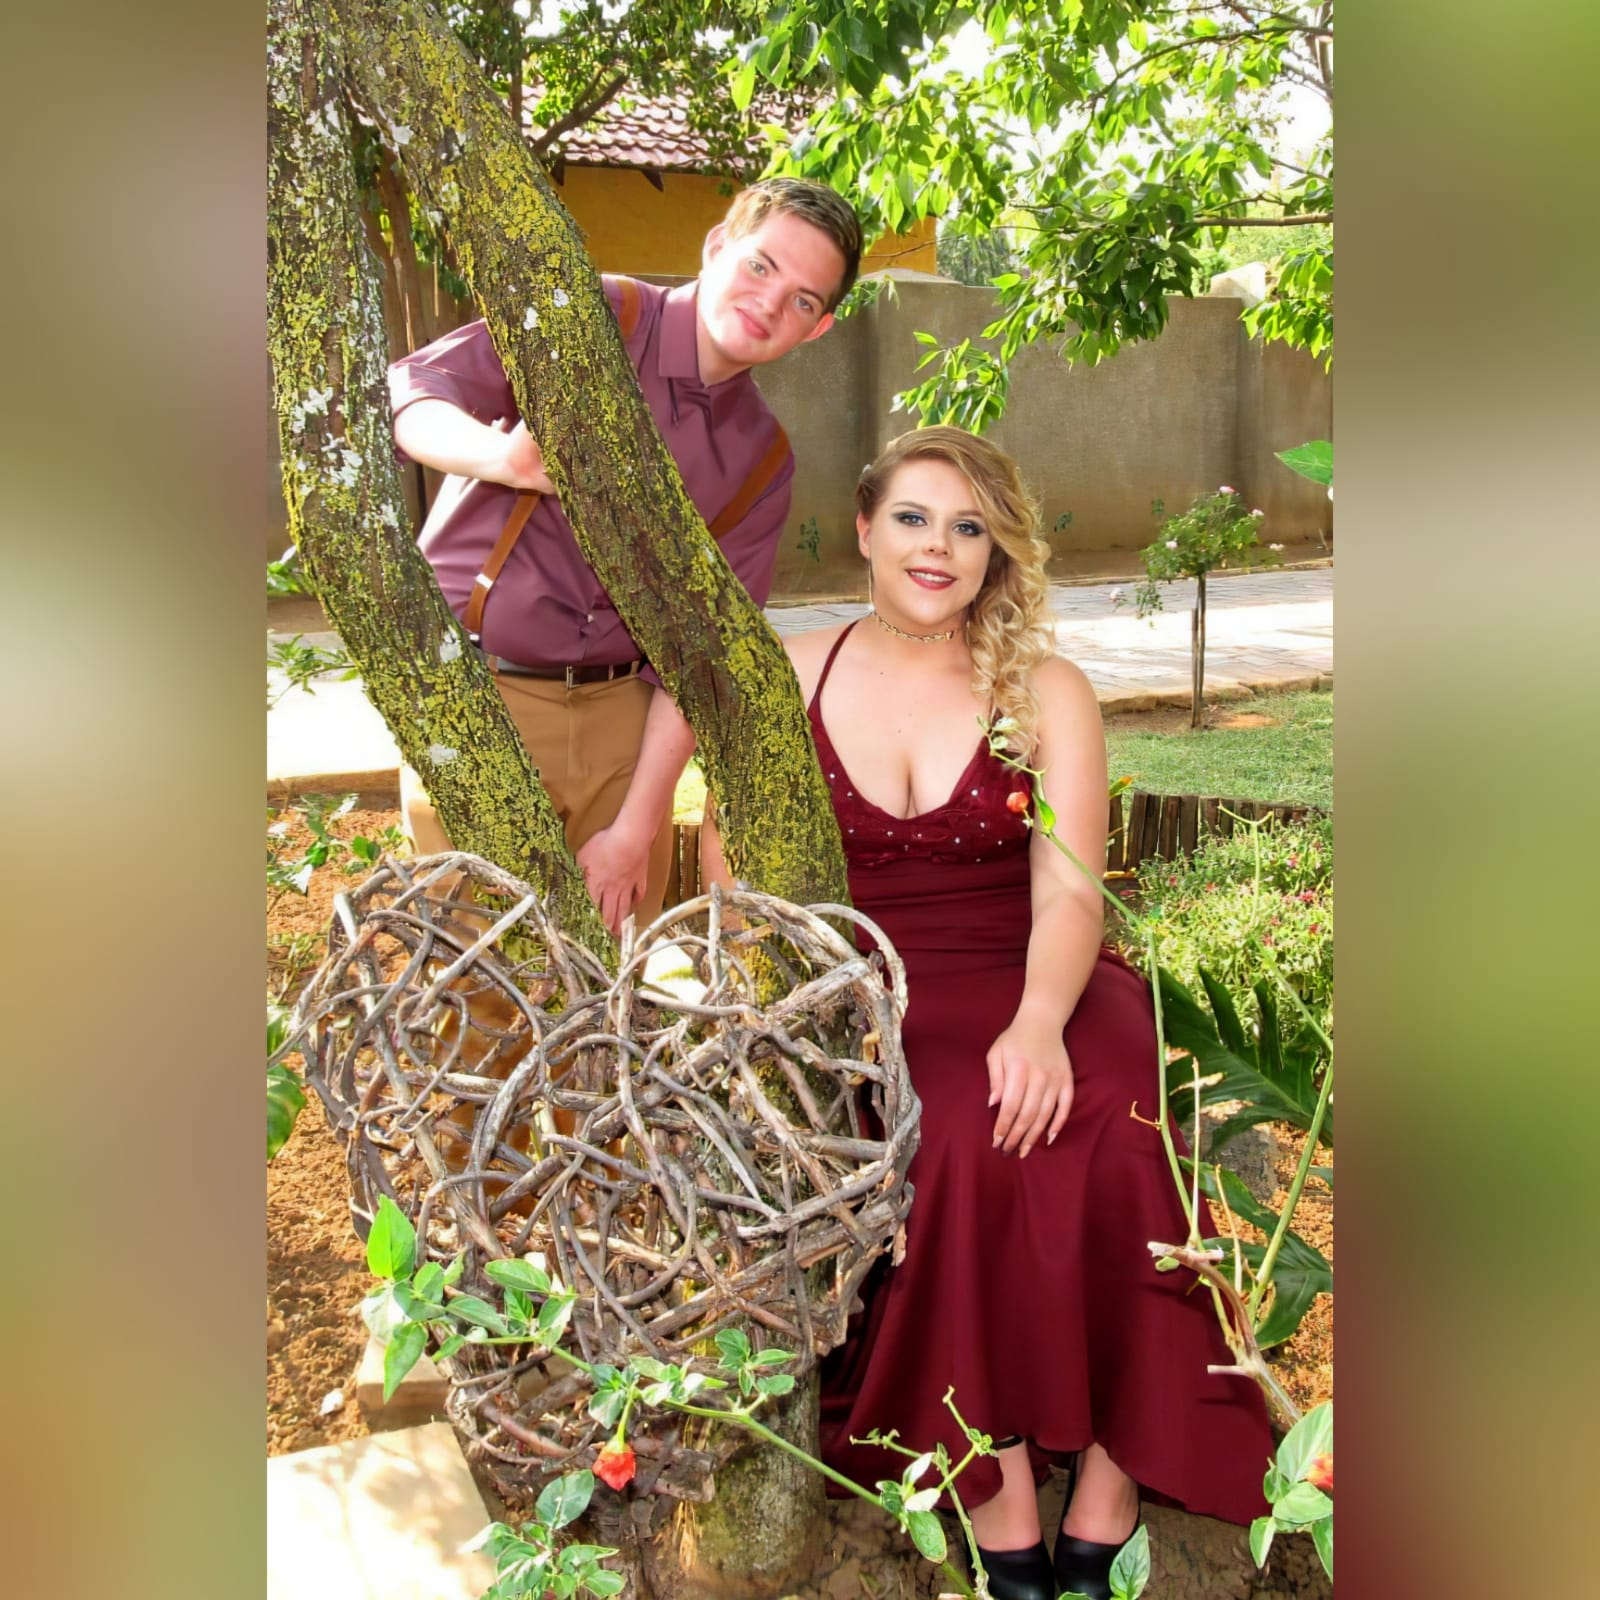 Burgundy soft mermaid plus size prom dress 2 burgundy soft mermaid plus size prom dress. Bodice detailed with lace and silver beads, small triangle opening on the waist with waistband finish. Open laceup back and a train.